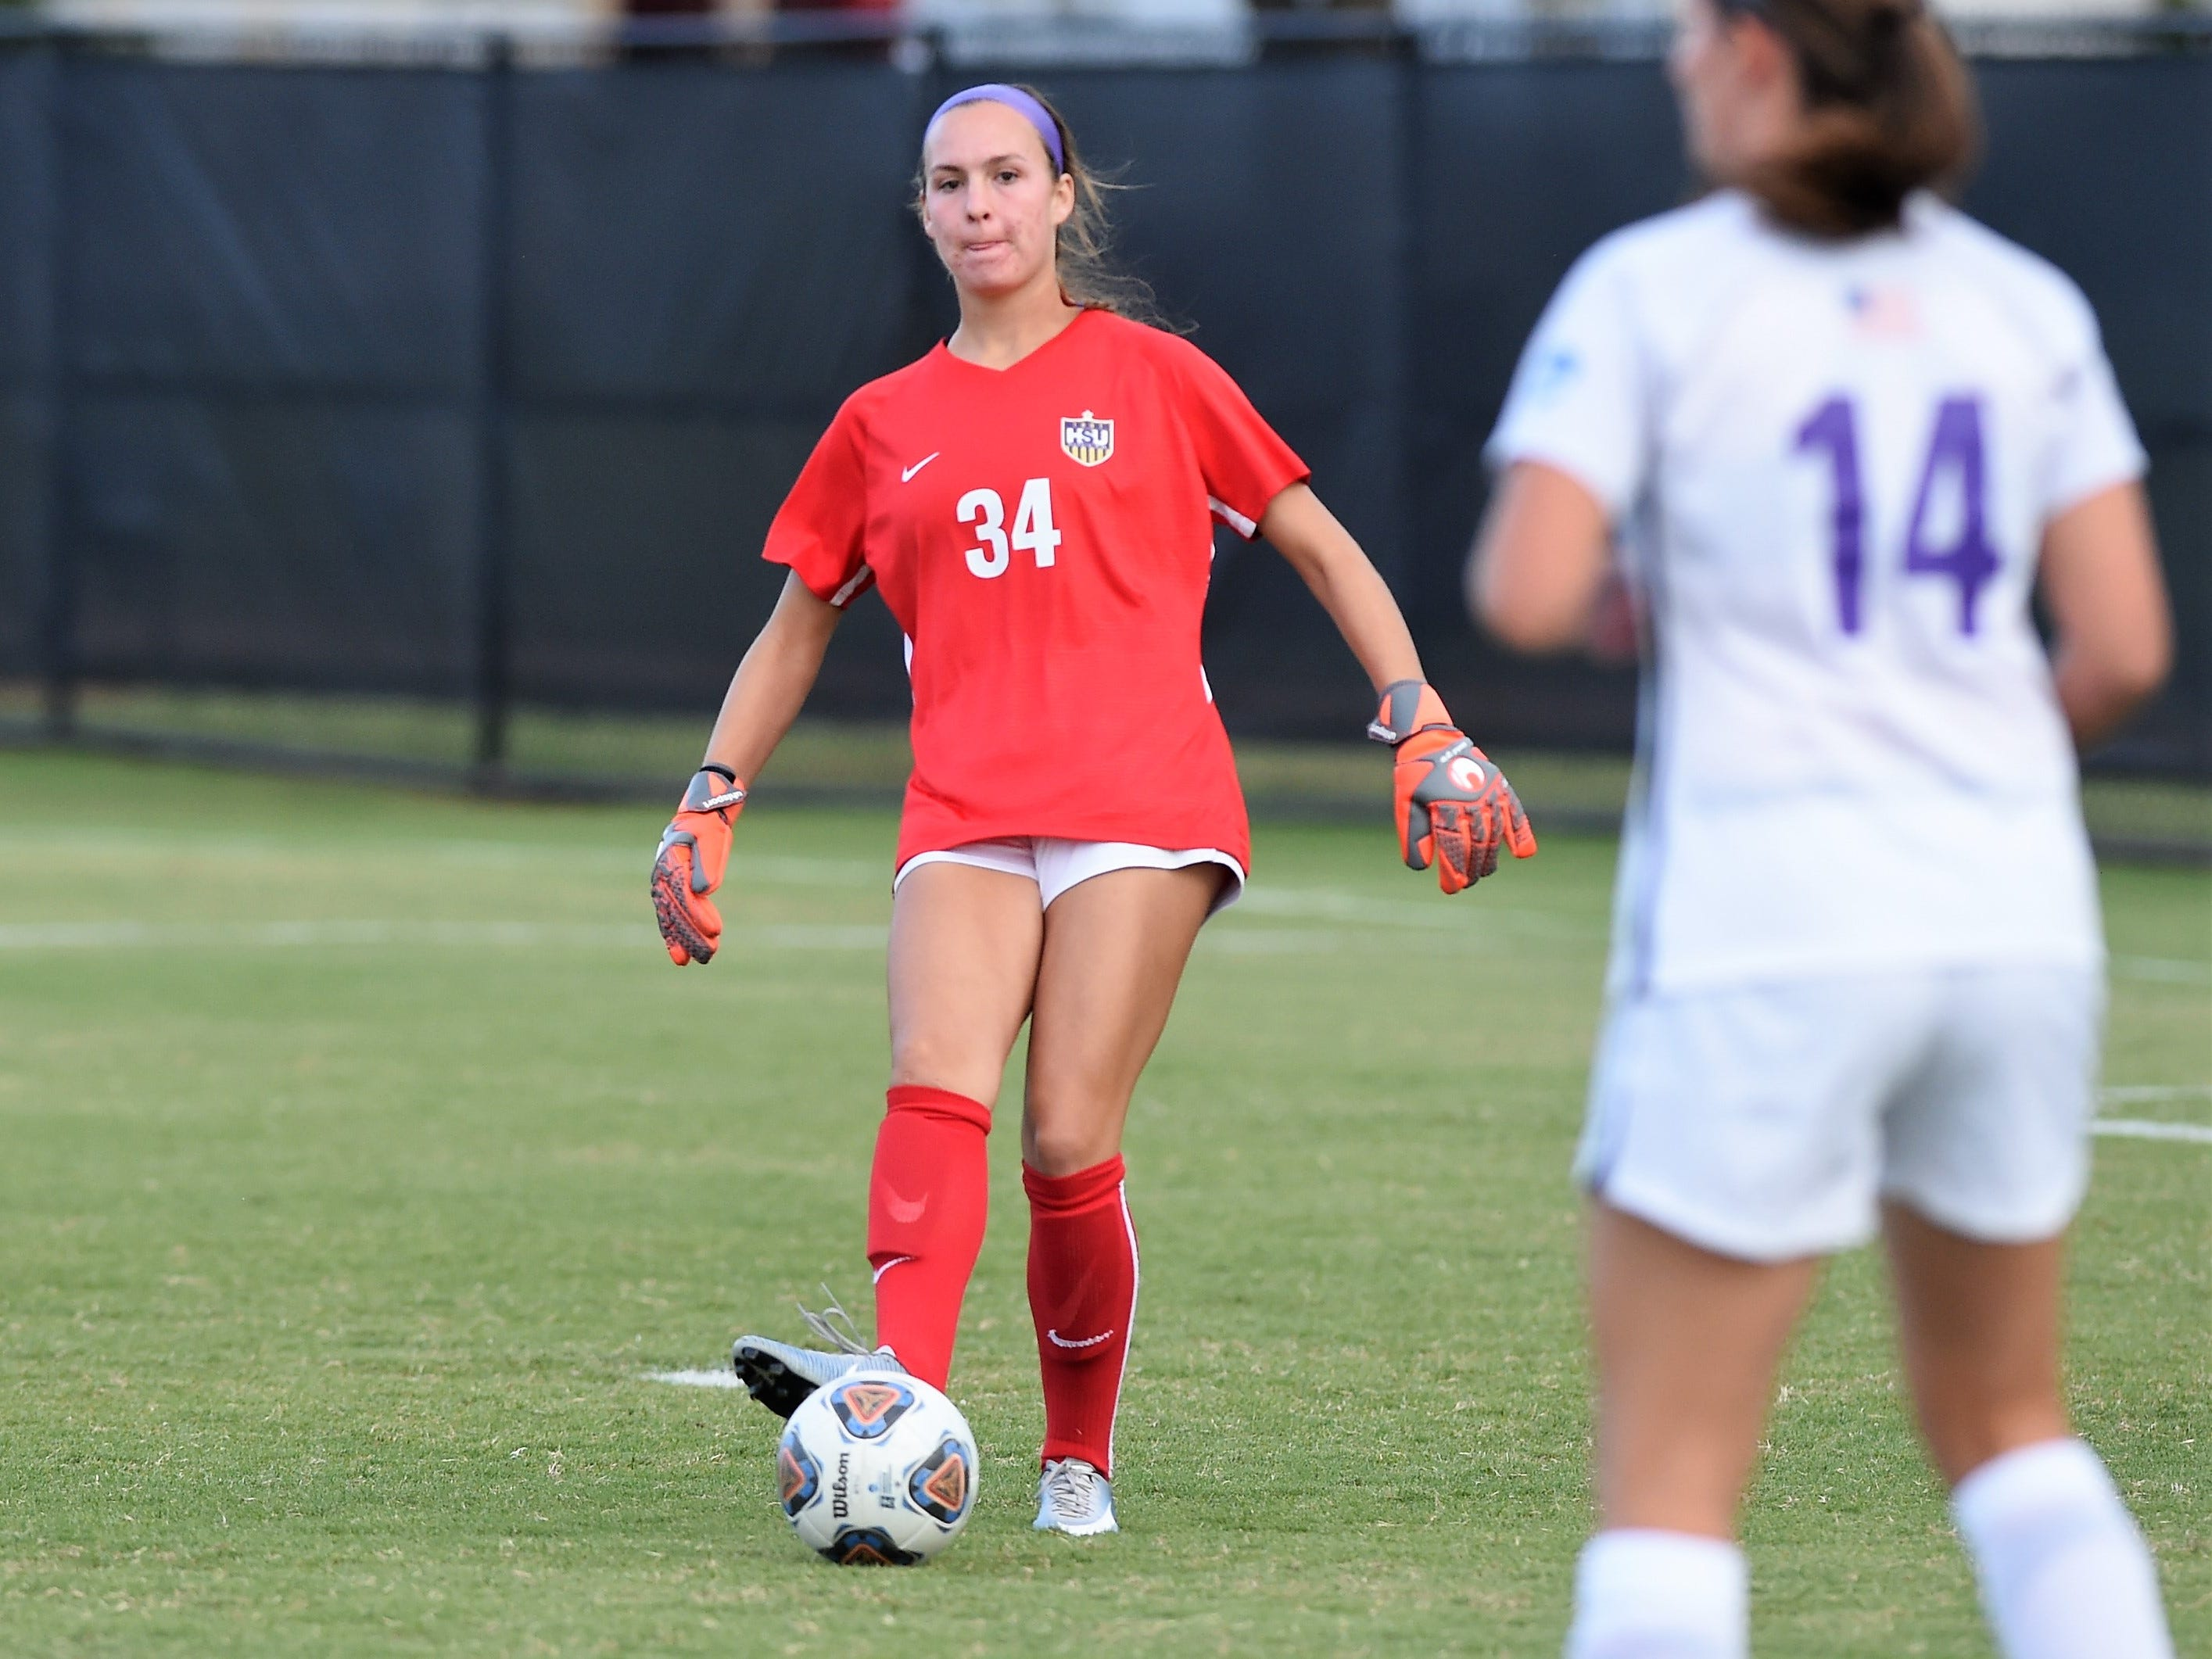 Hardin-Simmons keeper Caitlin Christiansen (34) passes the ball against Howard Payne at the HSU Soccer Complex on Thursday, Oct. 11, 2018. The Cowgirls won 4-1.